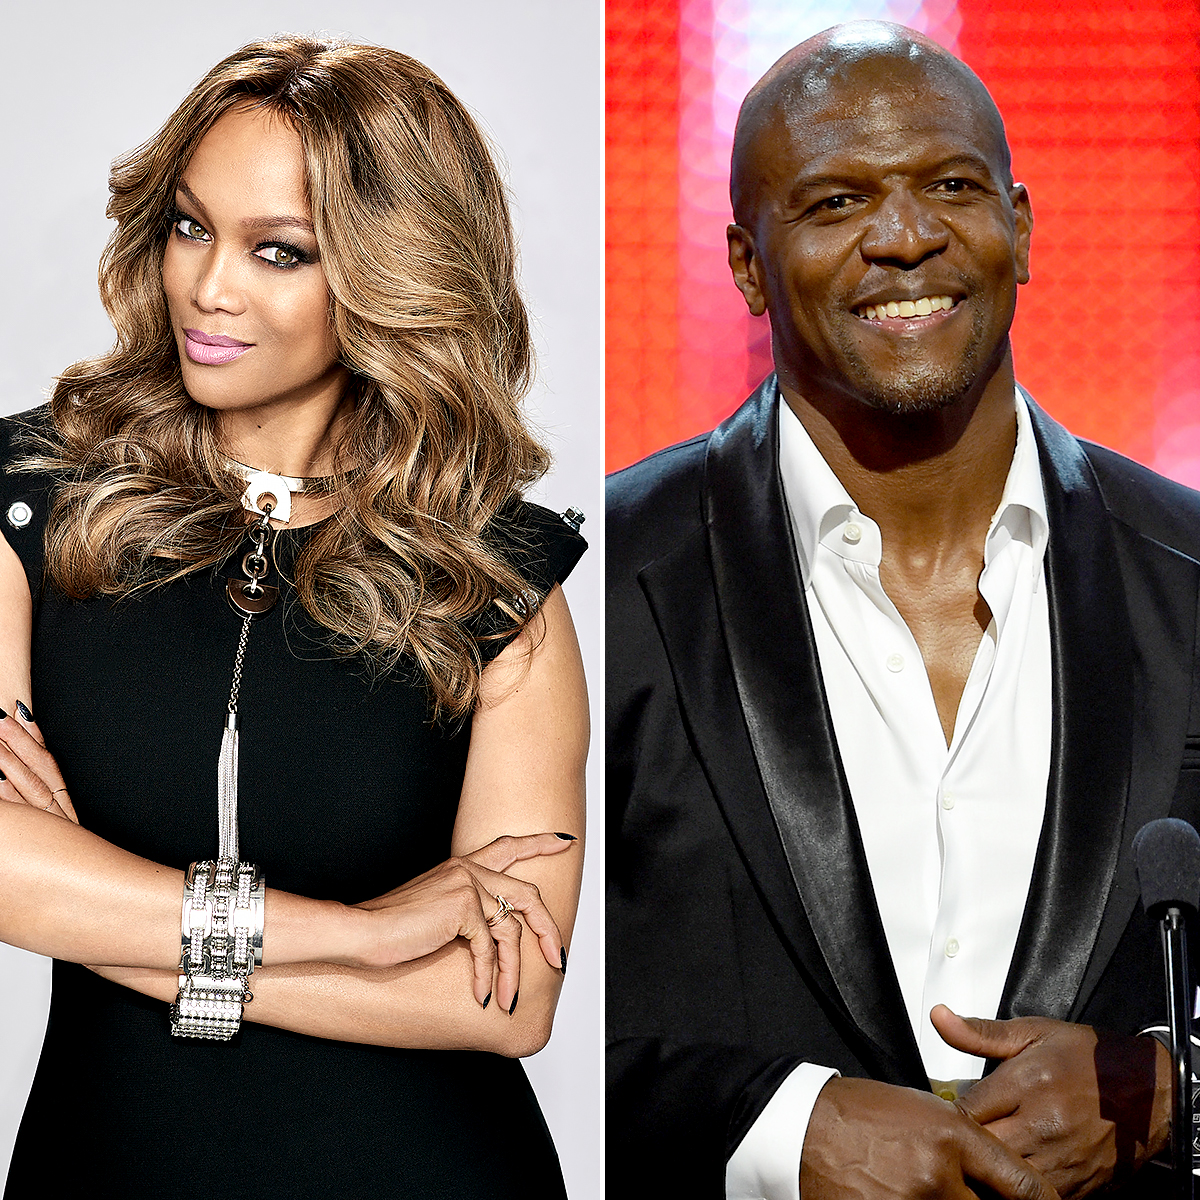 Tyra-Banks-and-Terry-Crews-americas-got-talent - Tyra Banks and Terry Crews